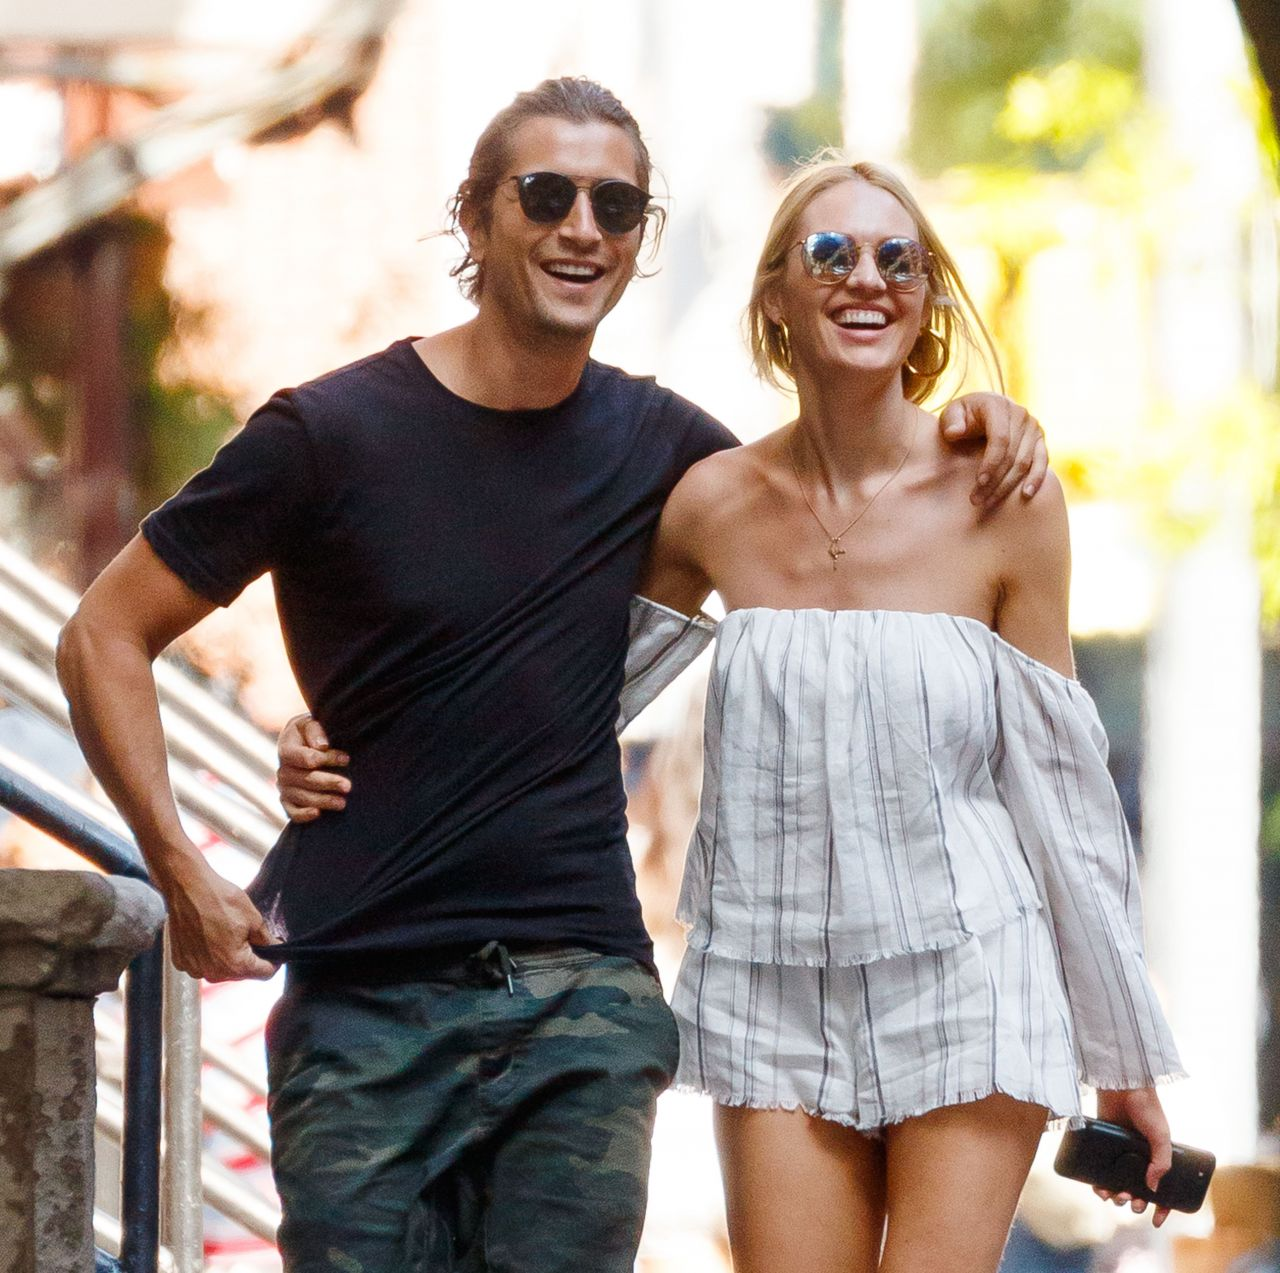 candice swanepoel and hermann nicoli going to brunch in